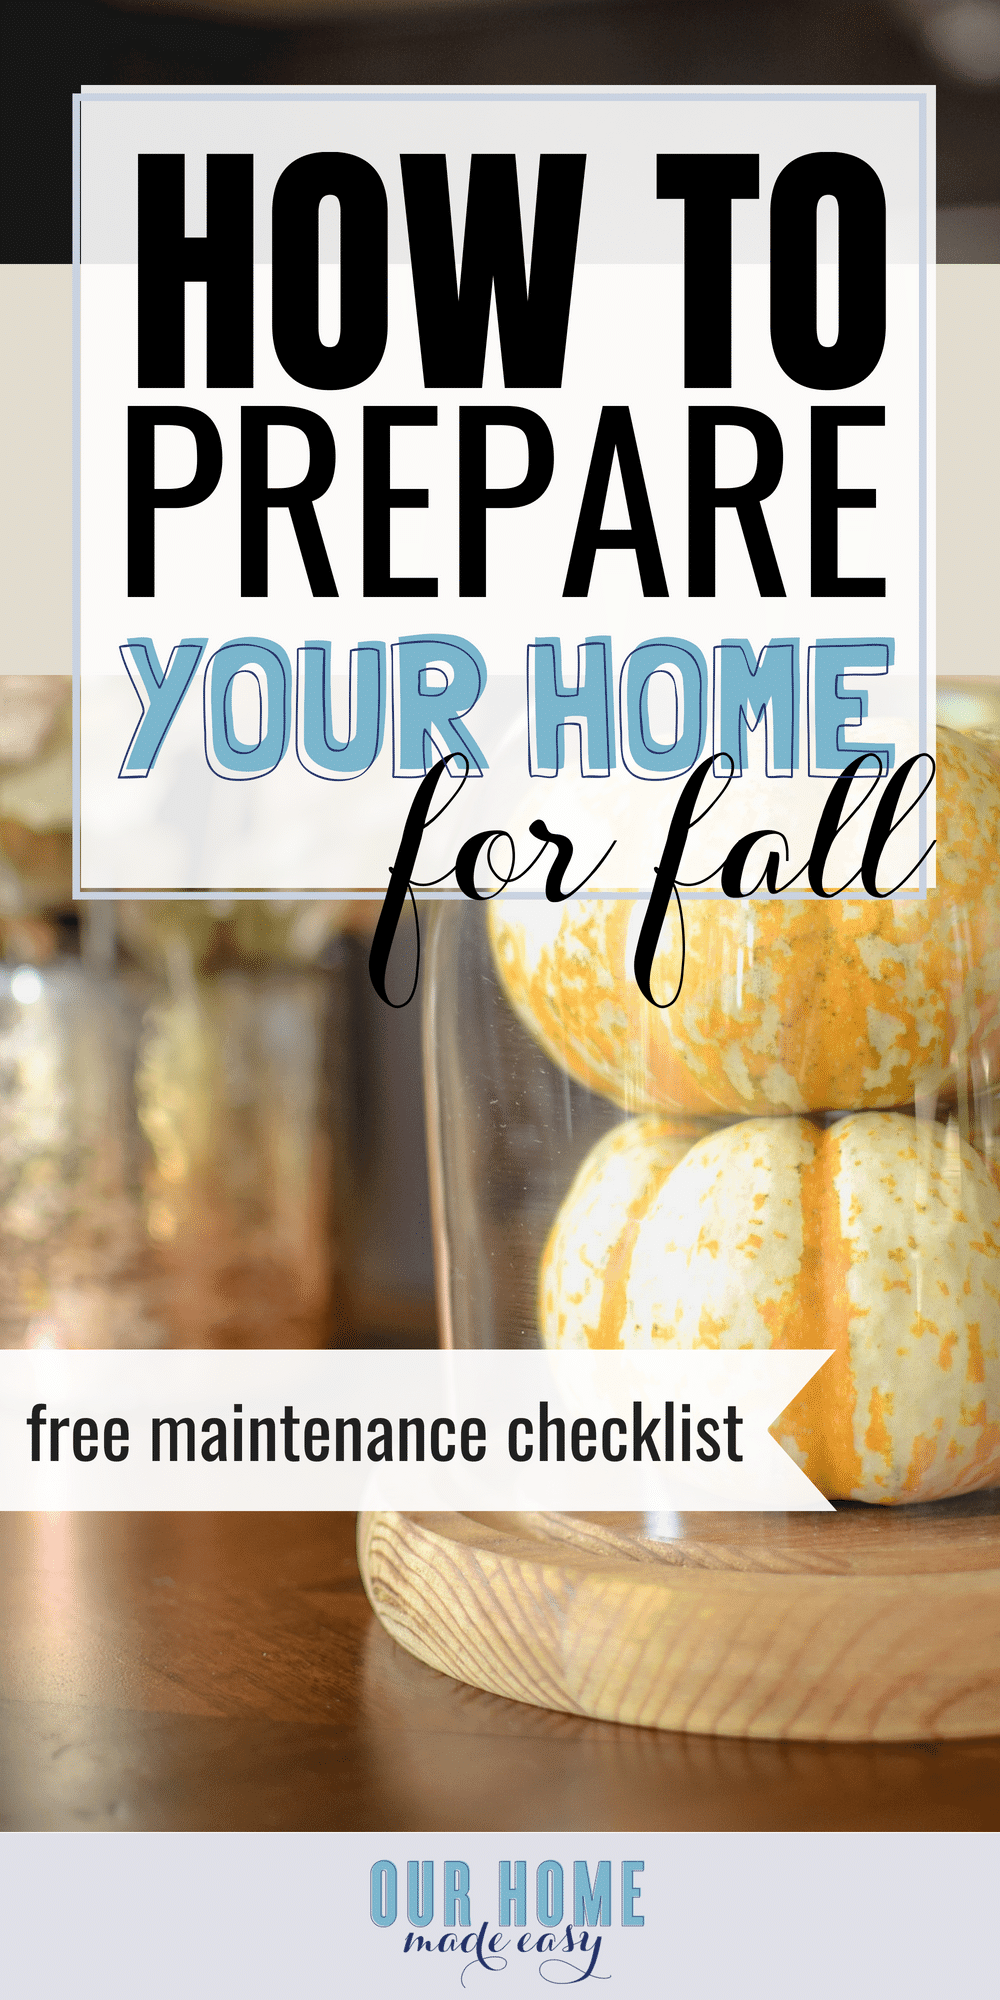 Get your home ready for fall in no time! Download the fall maintenance checklist! #home #fall #printable #DIY